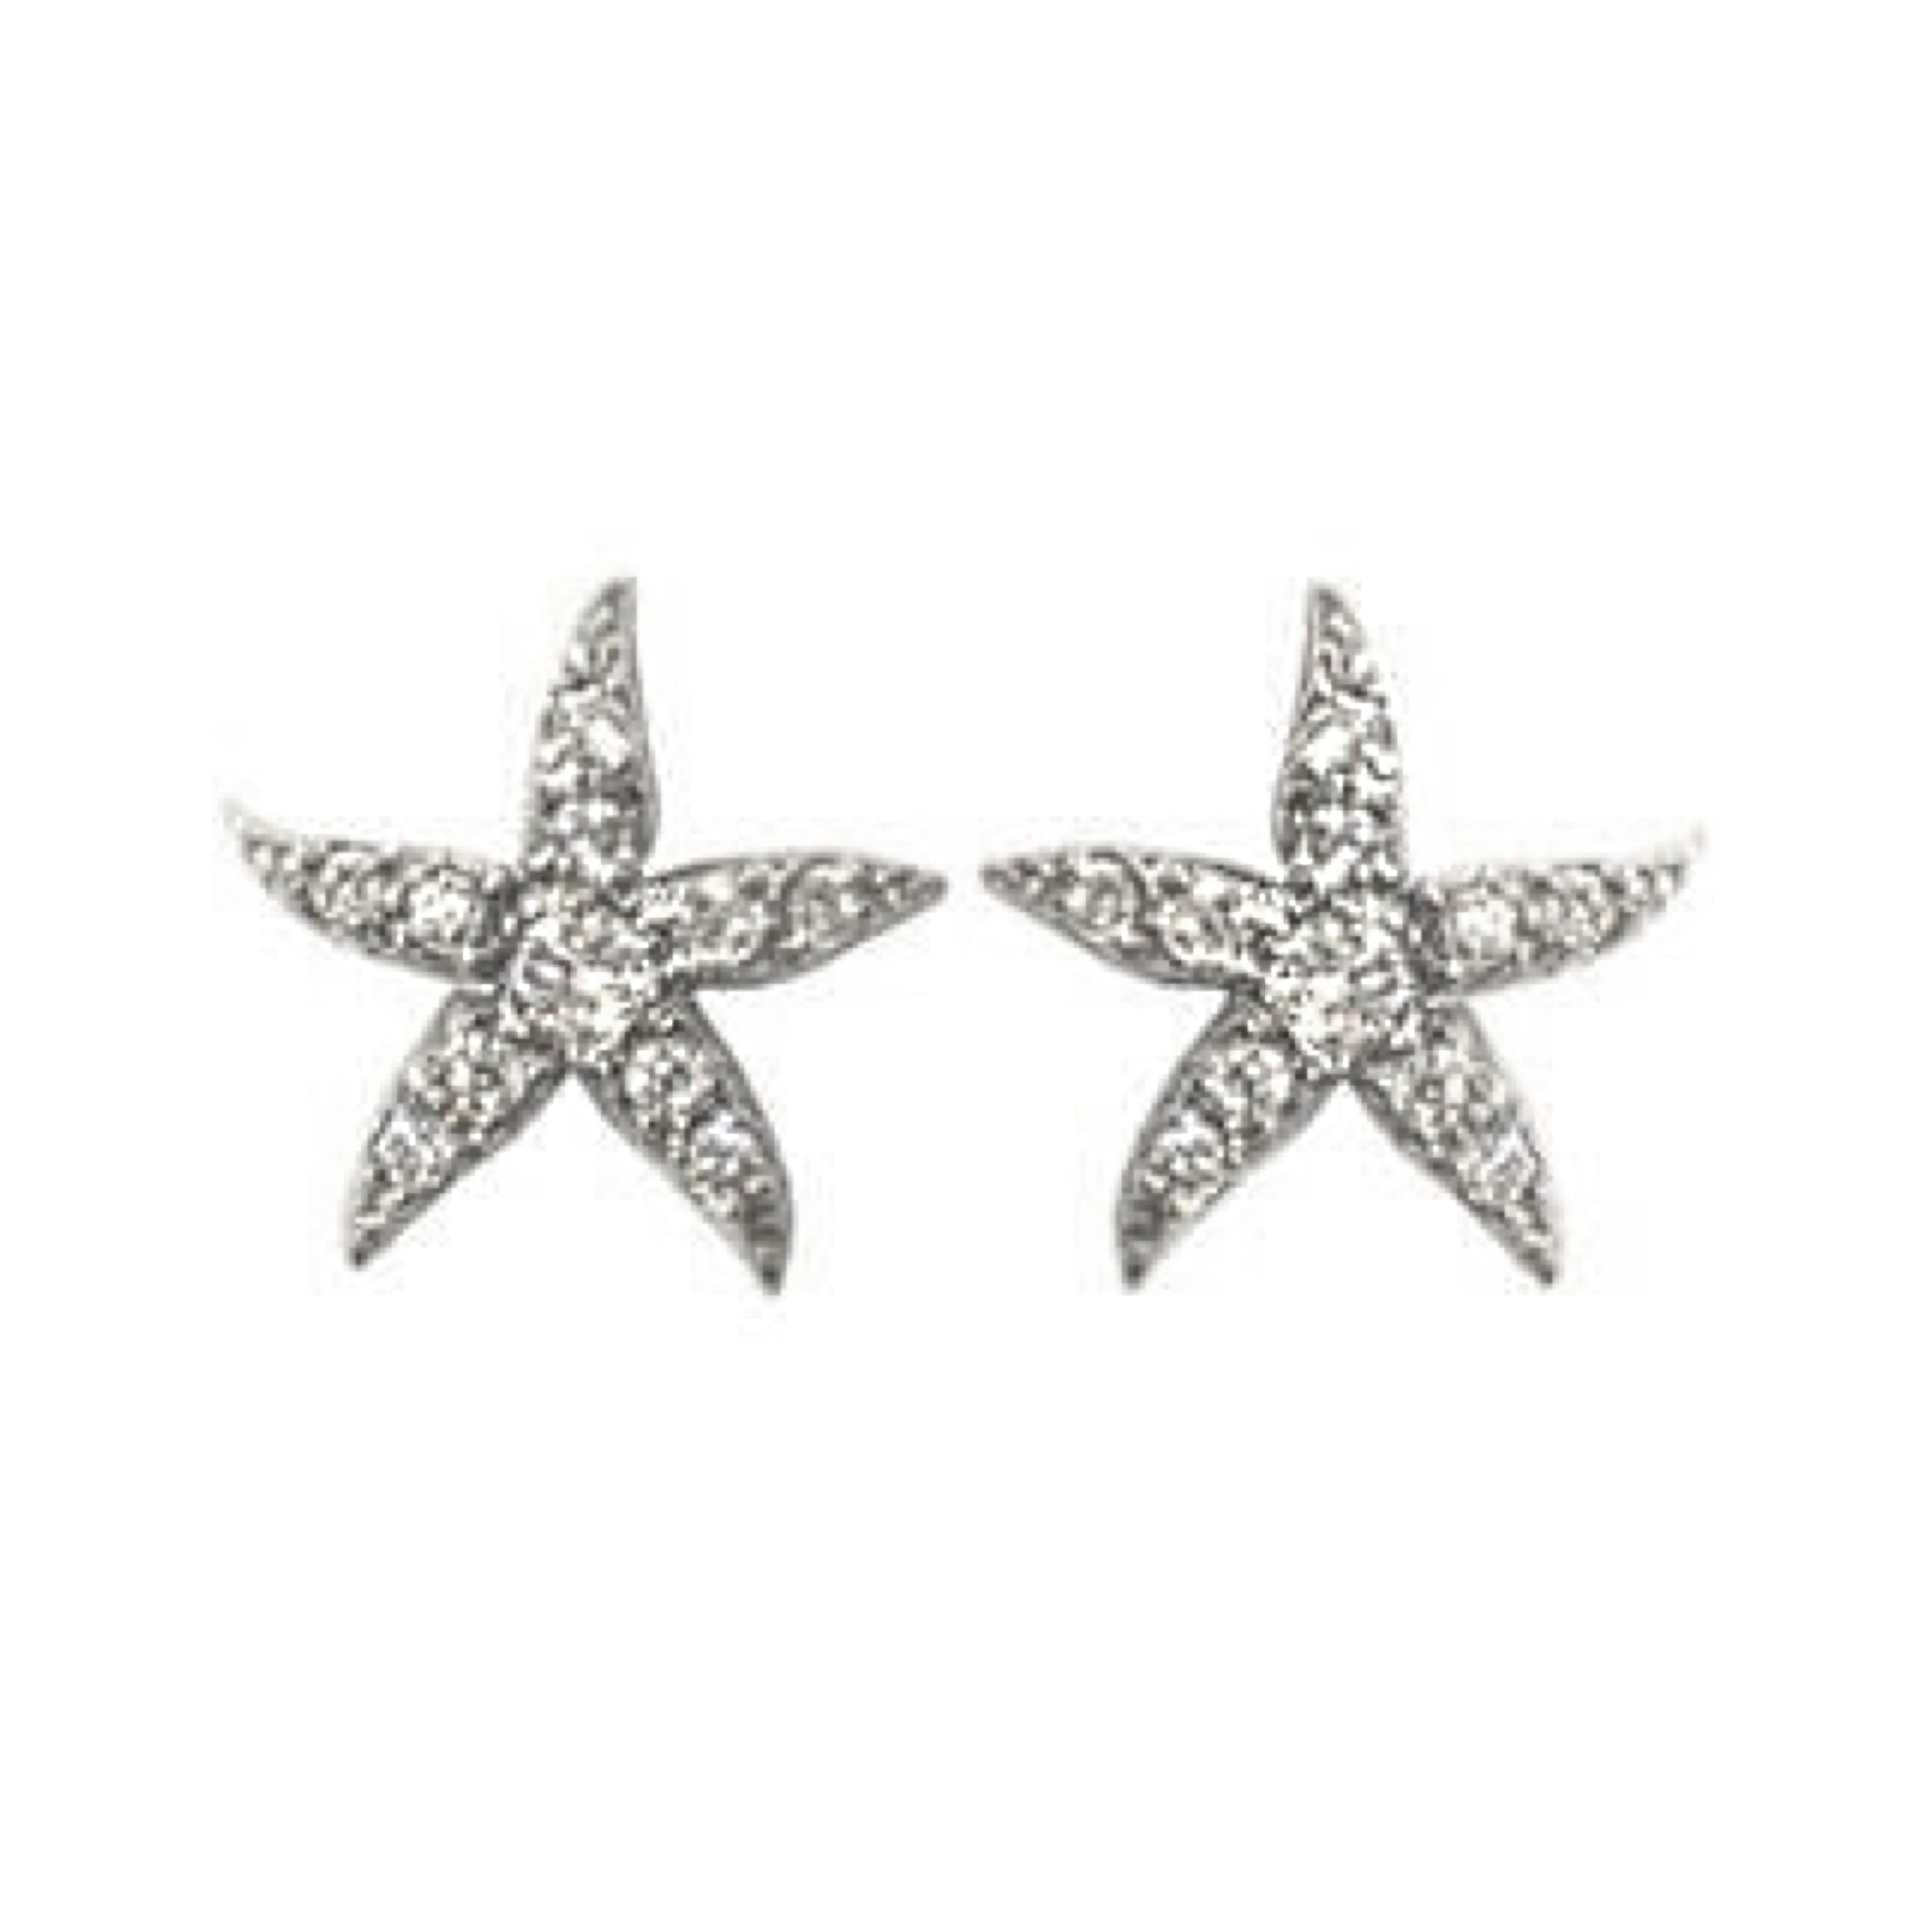 Tiny Diamond Starfish Earrings